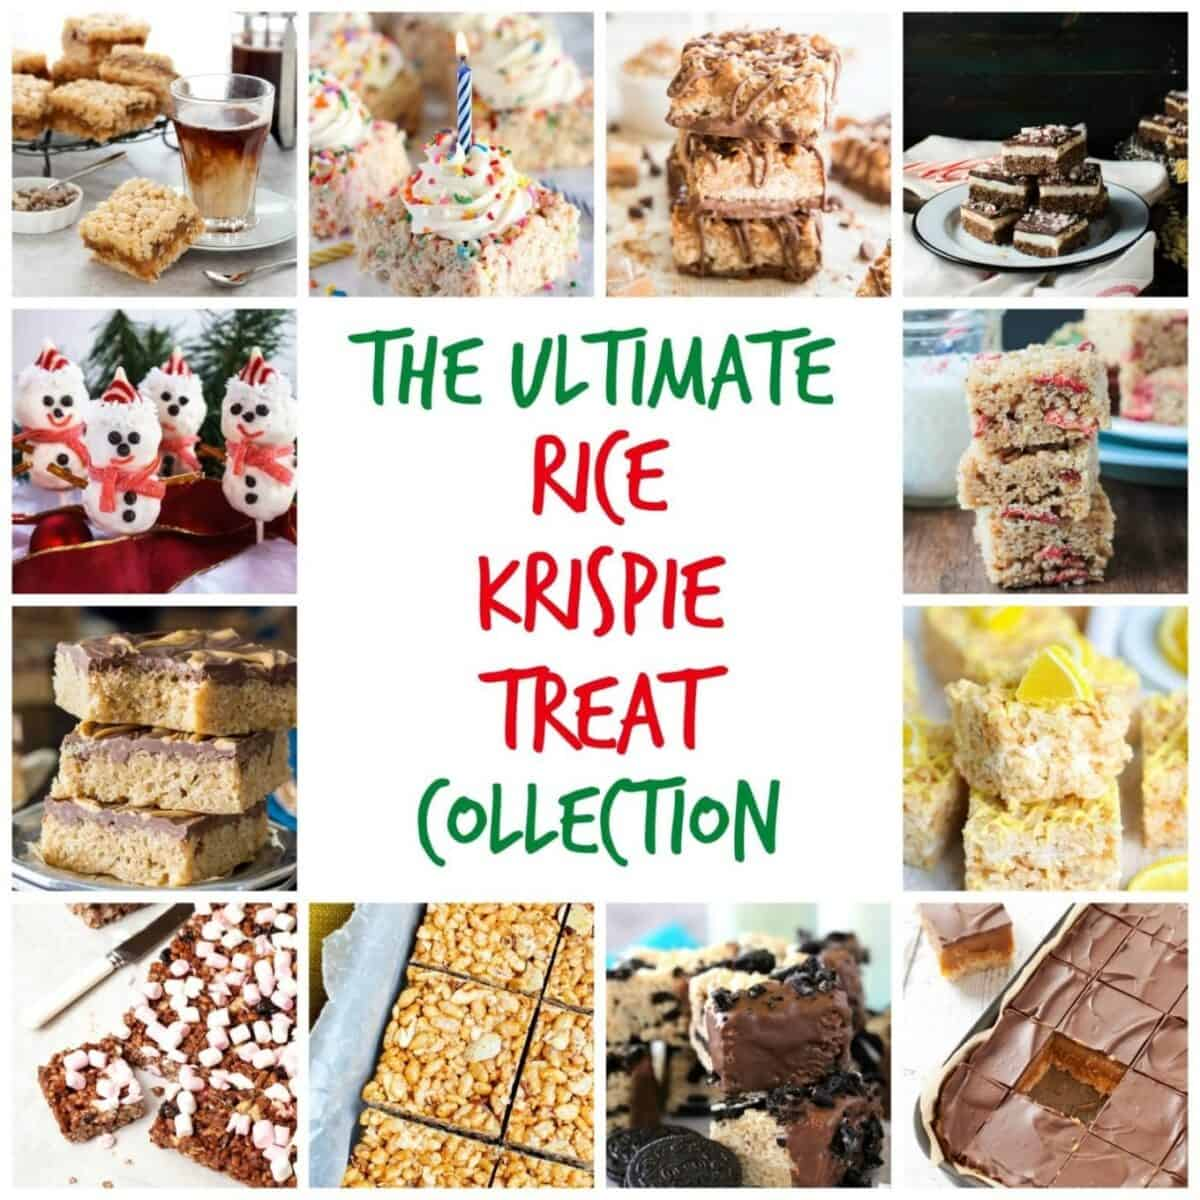 Collage of images featuring Rice Krispie Treats with text overlay